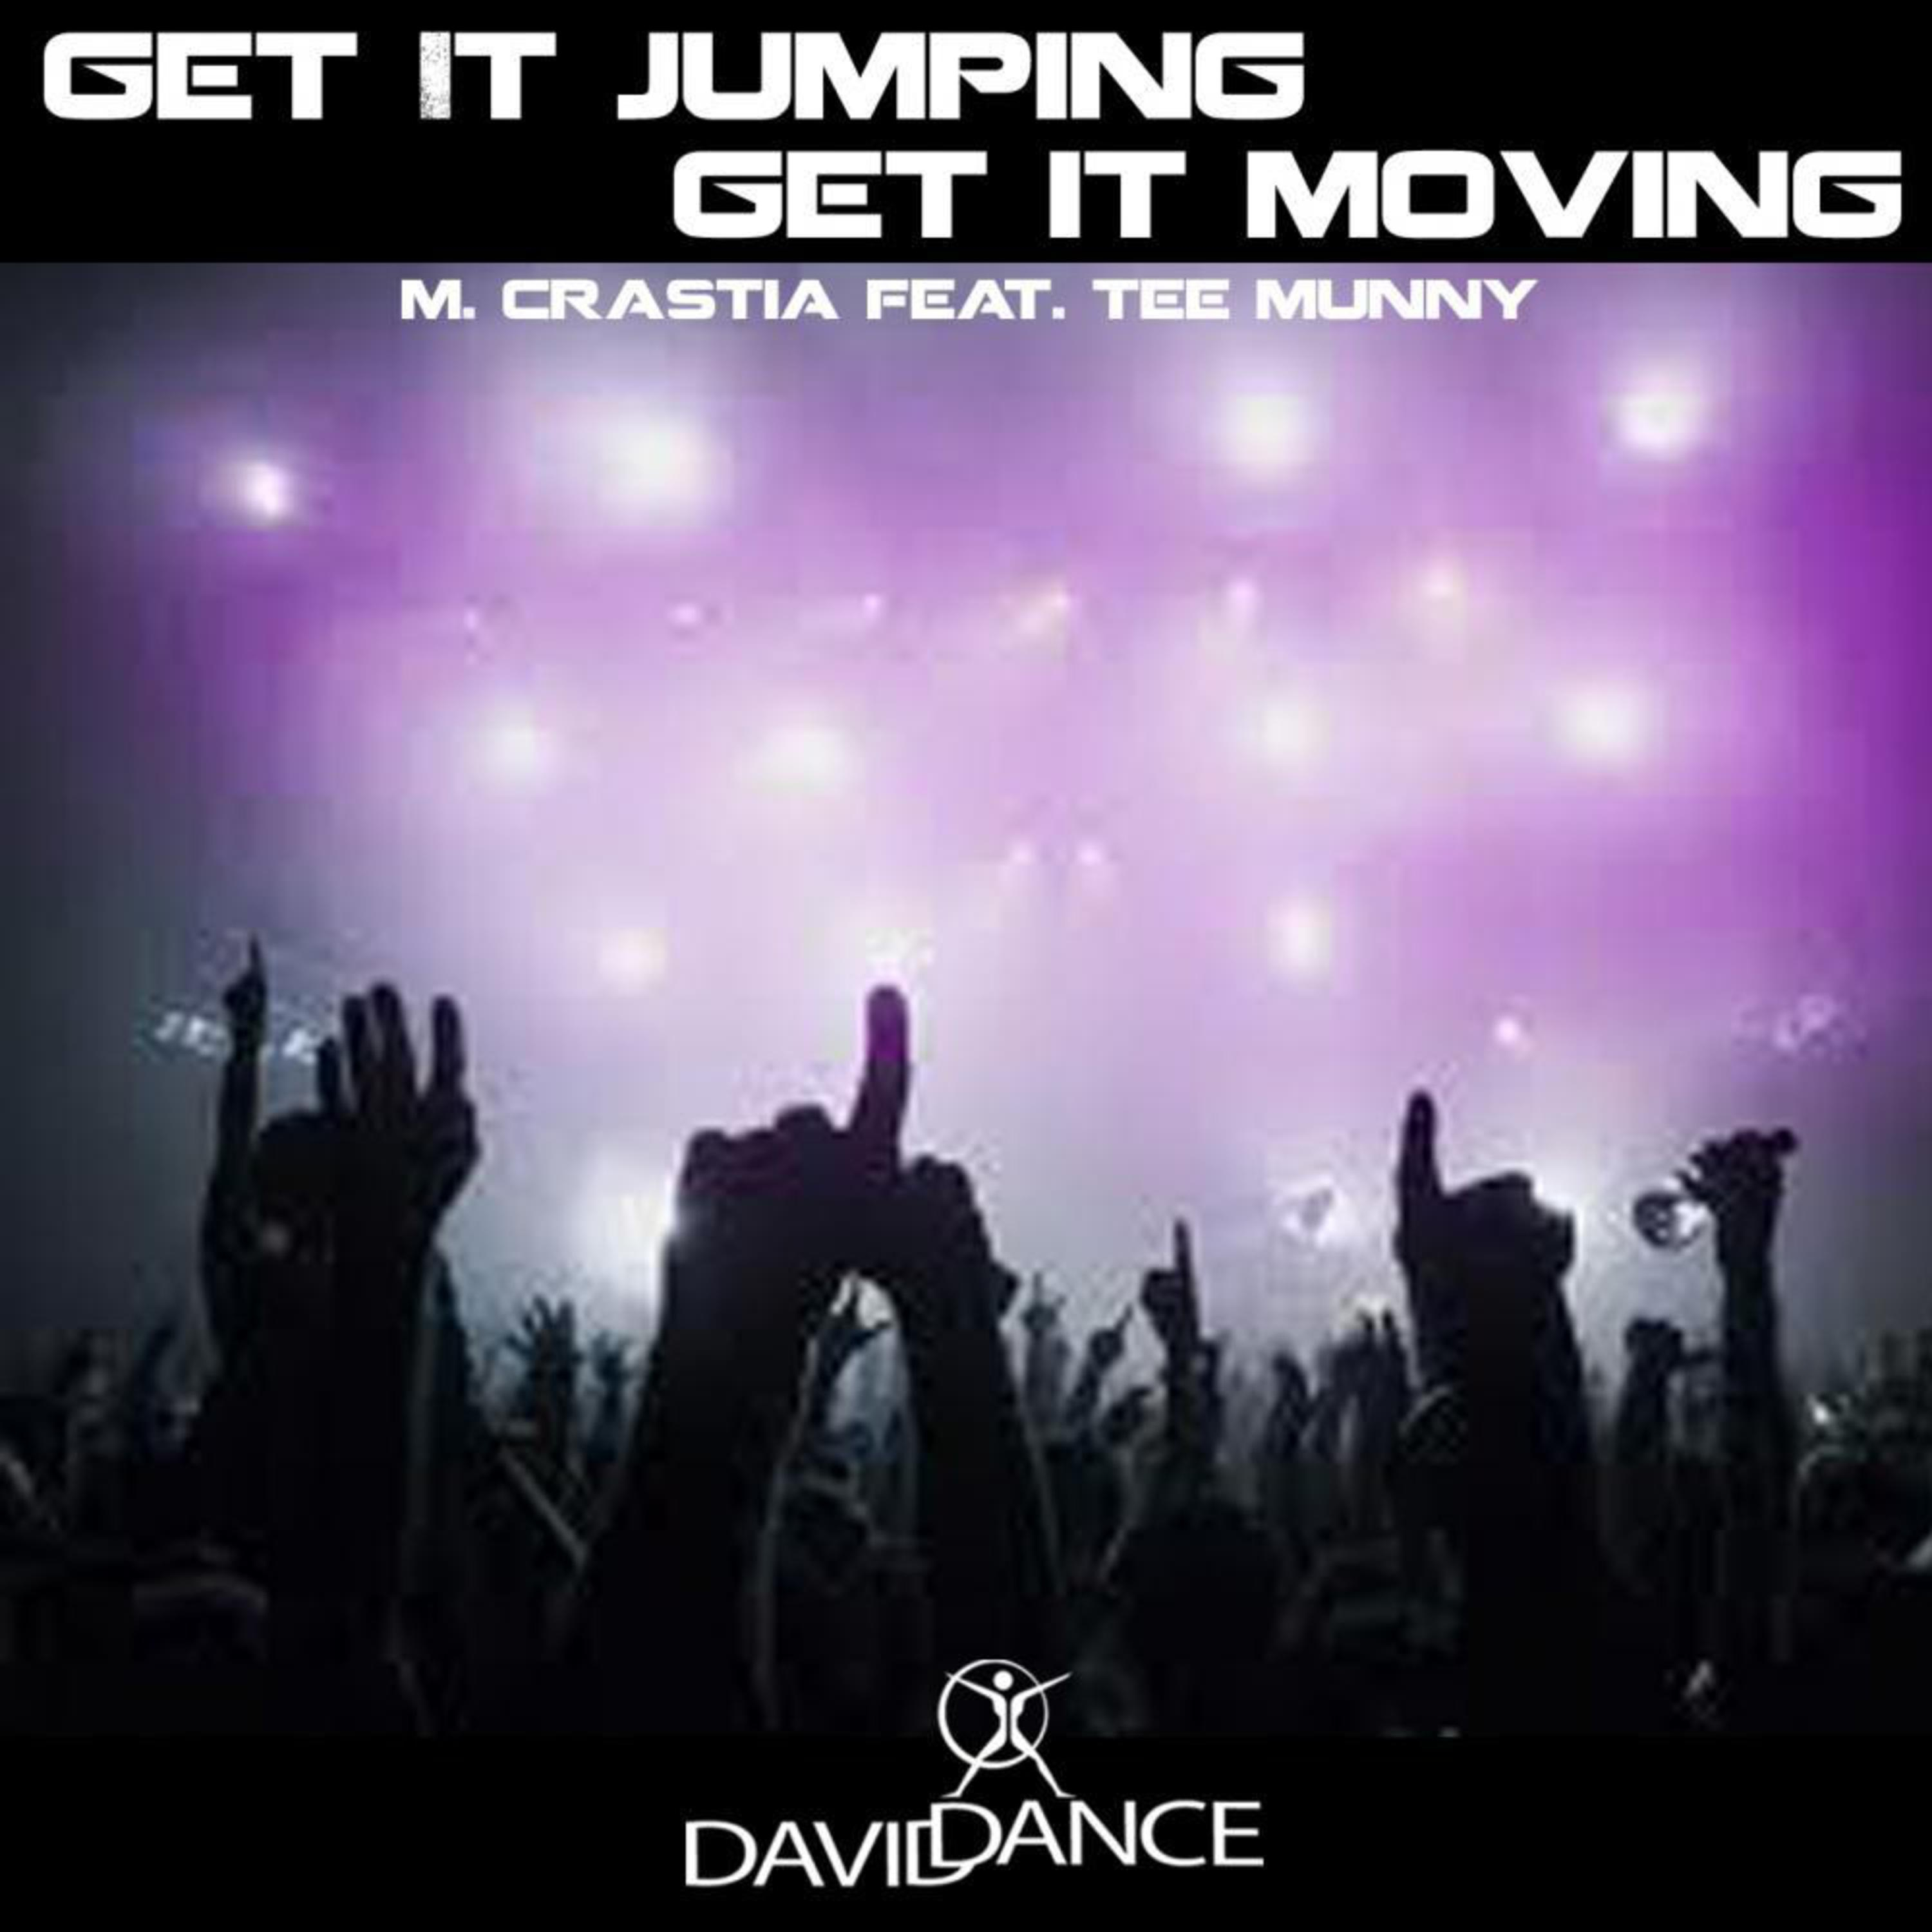 Marco Crastia - Get It Jumping, Get It Moving (feat.Tee Munny) (Instrumental Mix)